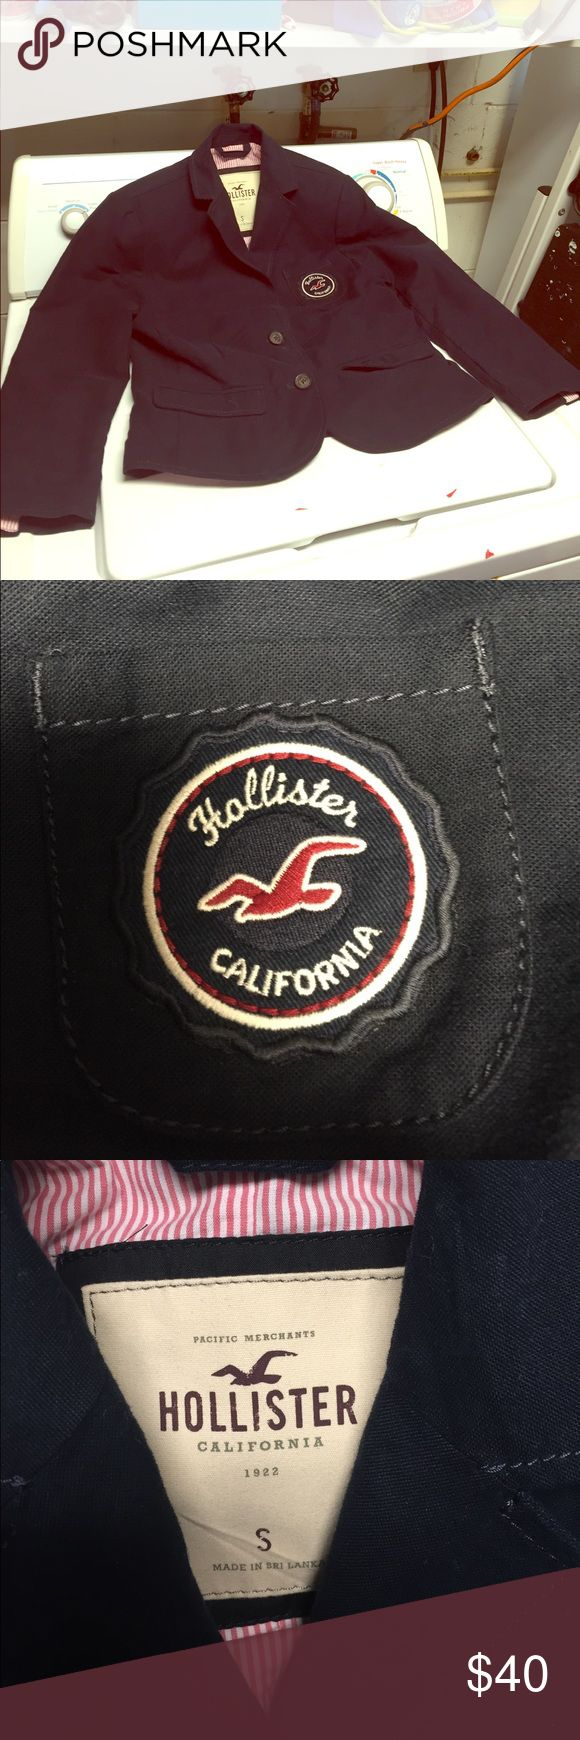 Hottest Hollister jacket ever made and like new So hot for work or play Hollister Jackets & Coats Blazers